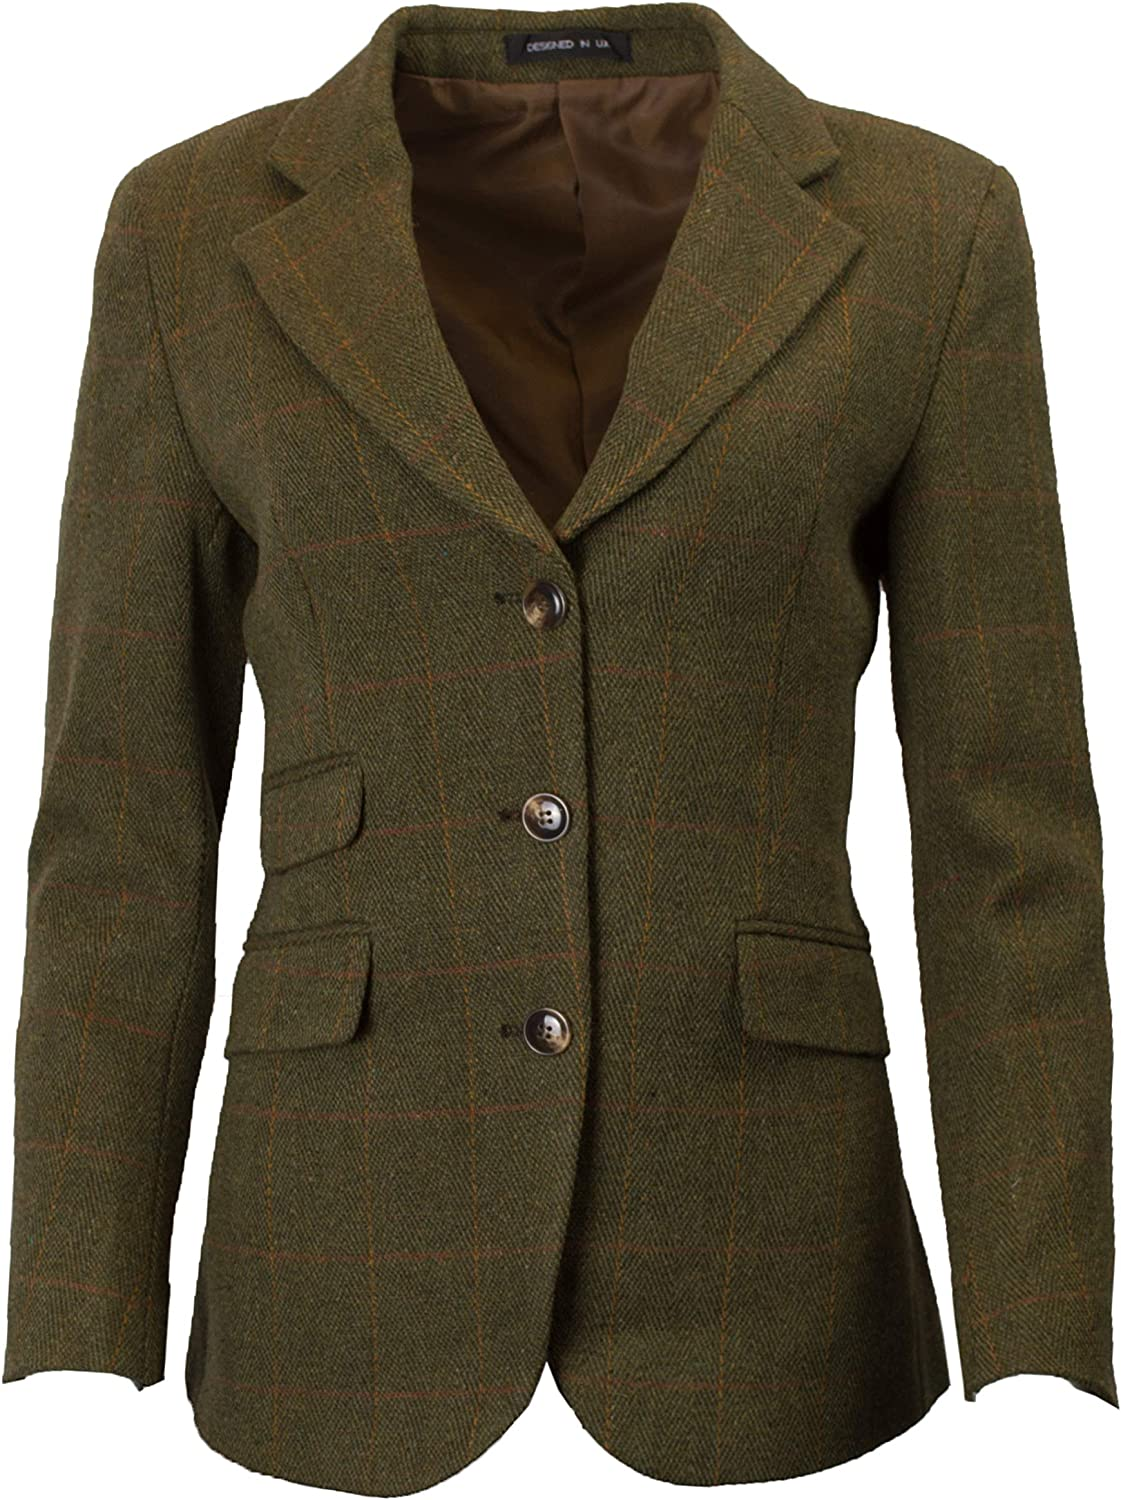 Walker /& Hawkes Mayland klassischer Country-Stil Damen Blazer aus Tweed